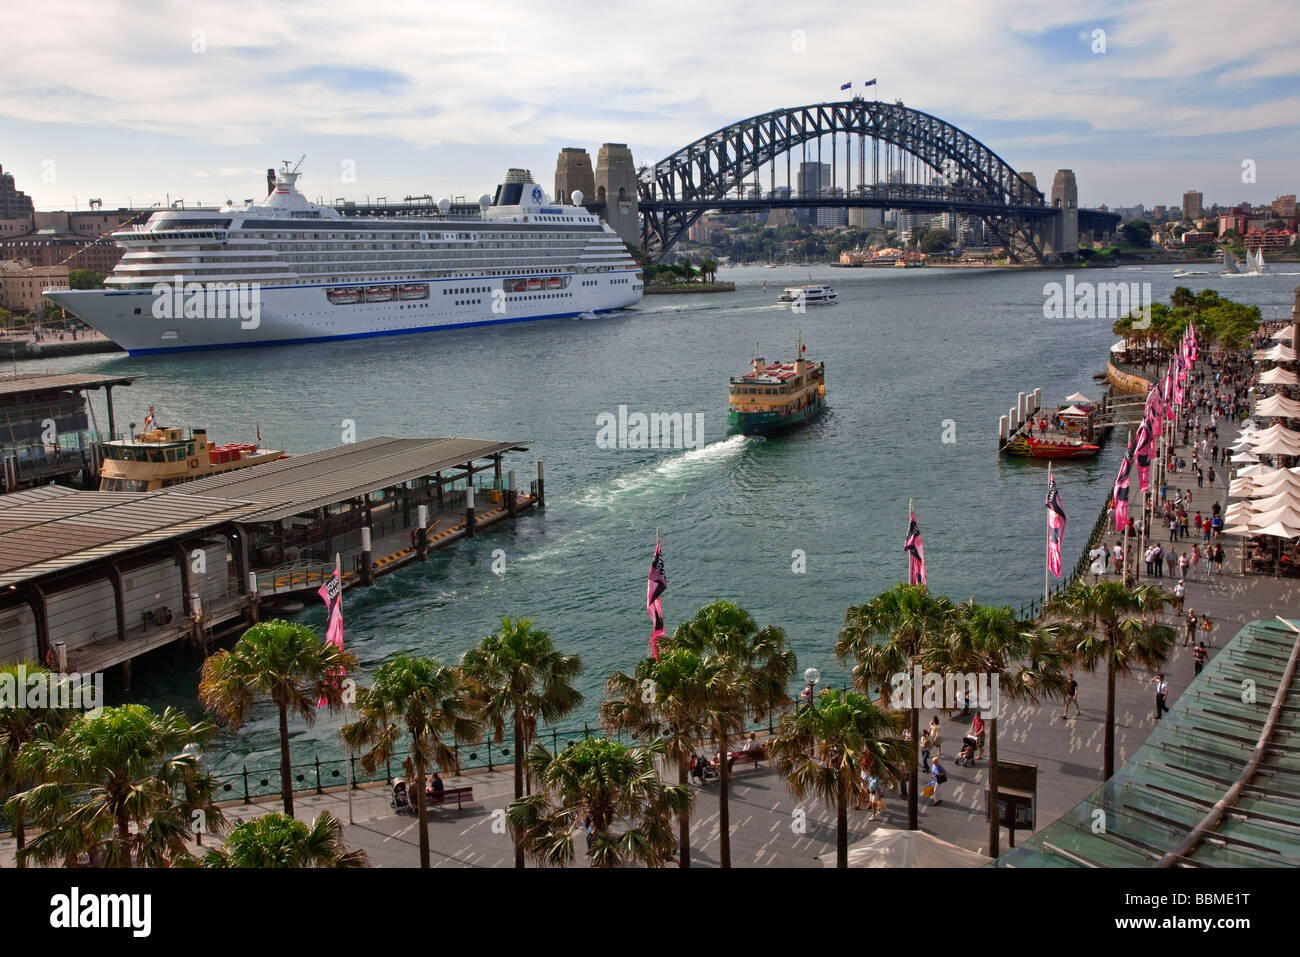 Australia New South Wales. Circular Quay and Sydney Cove with a large passenger liner berthed near Sydney Harbour - Stock Image